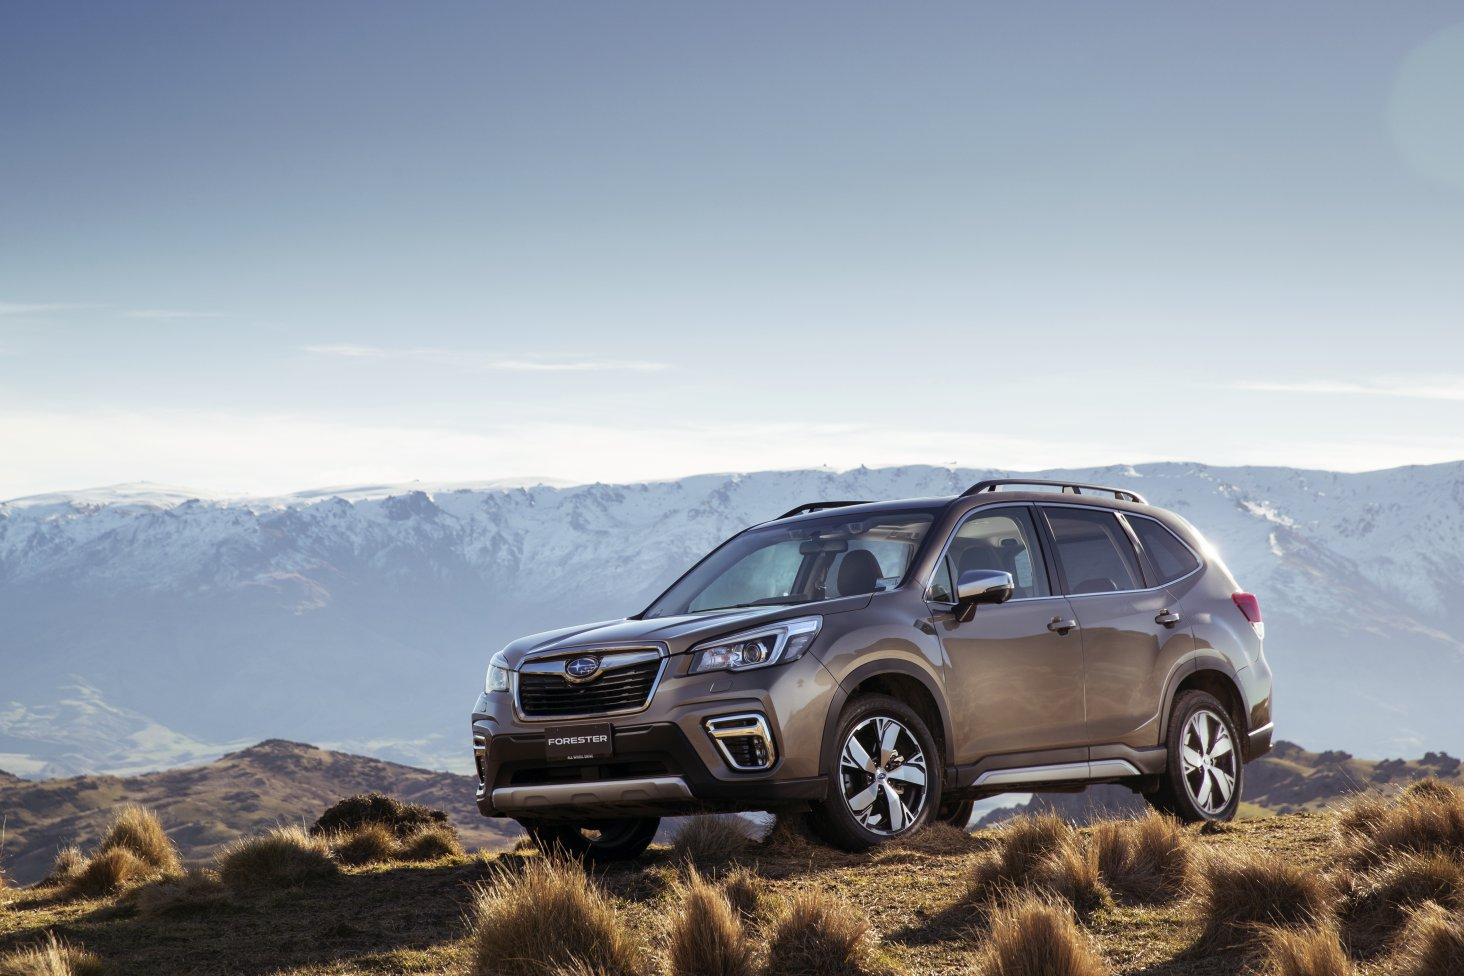 The new generation Subaru Forester SUV has been announced as the New Zealand Car of the Year today.